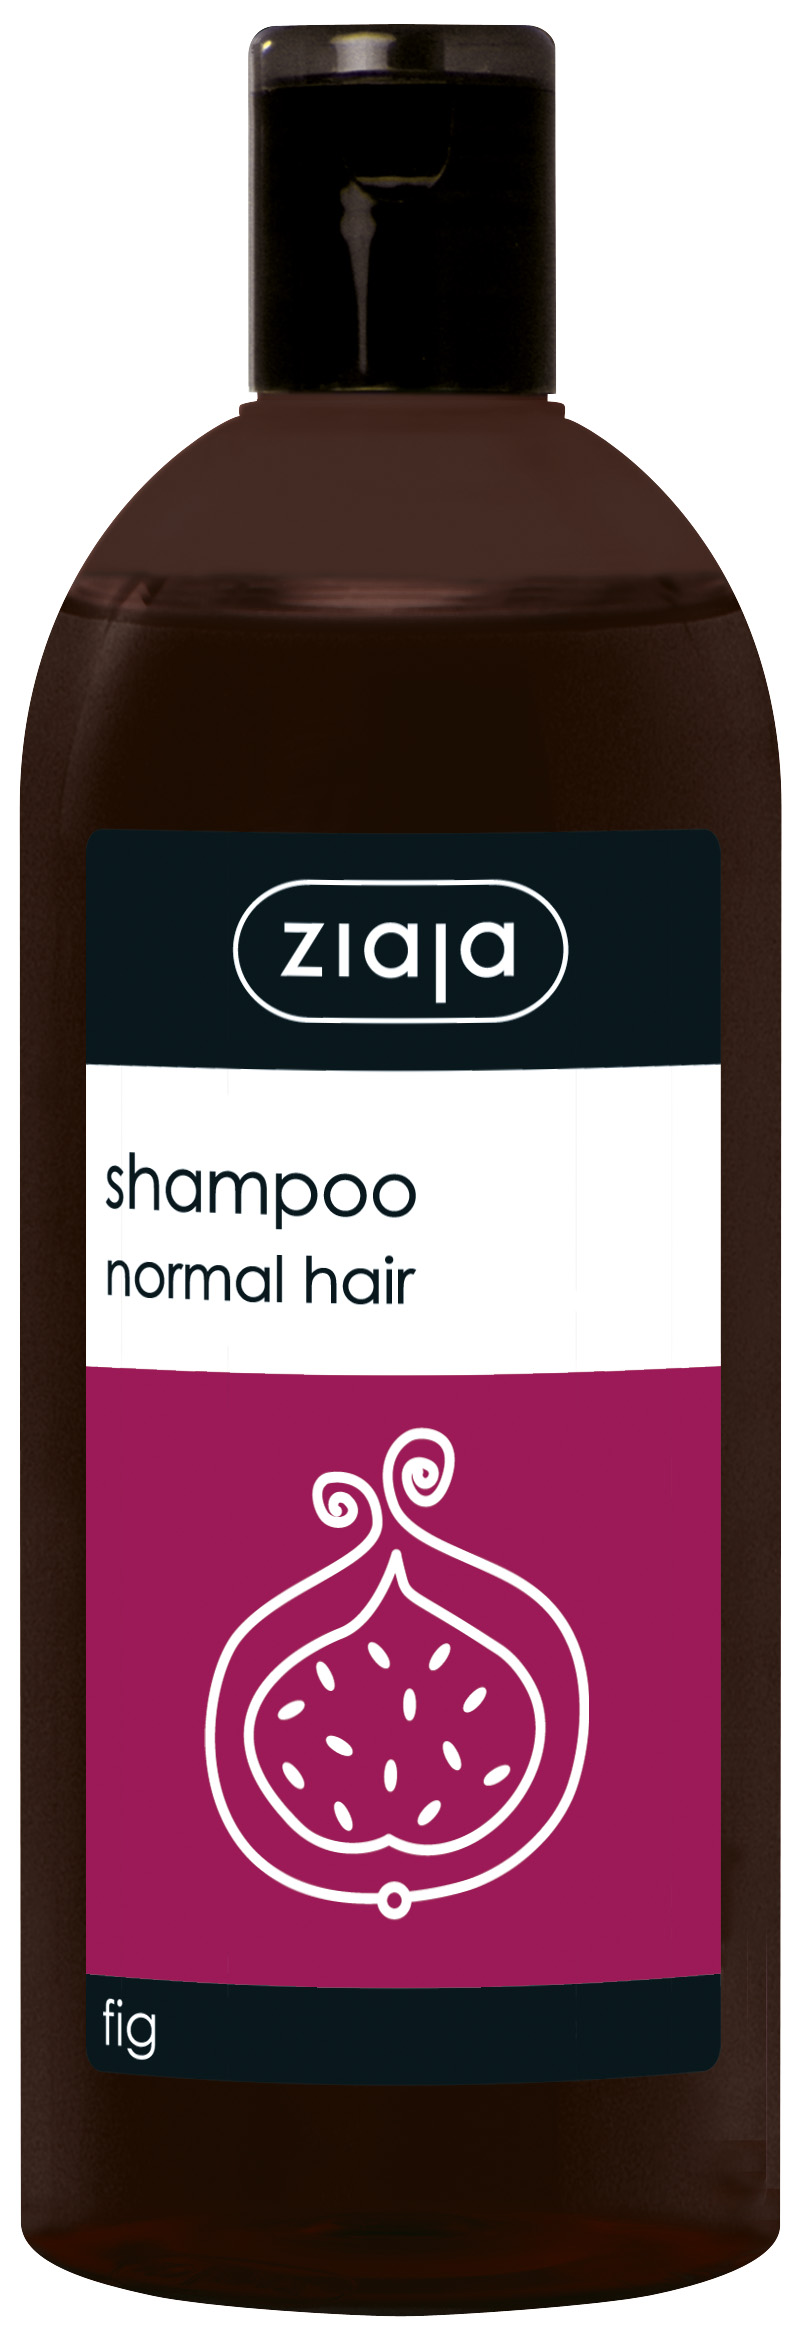 Ziaja Shampoo for normal hair with fig extract